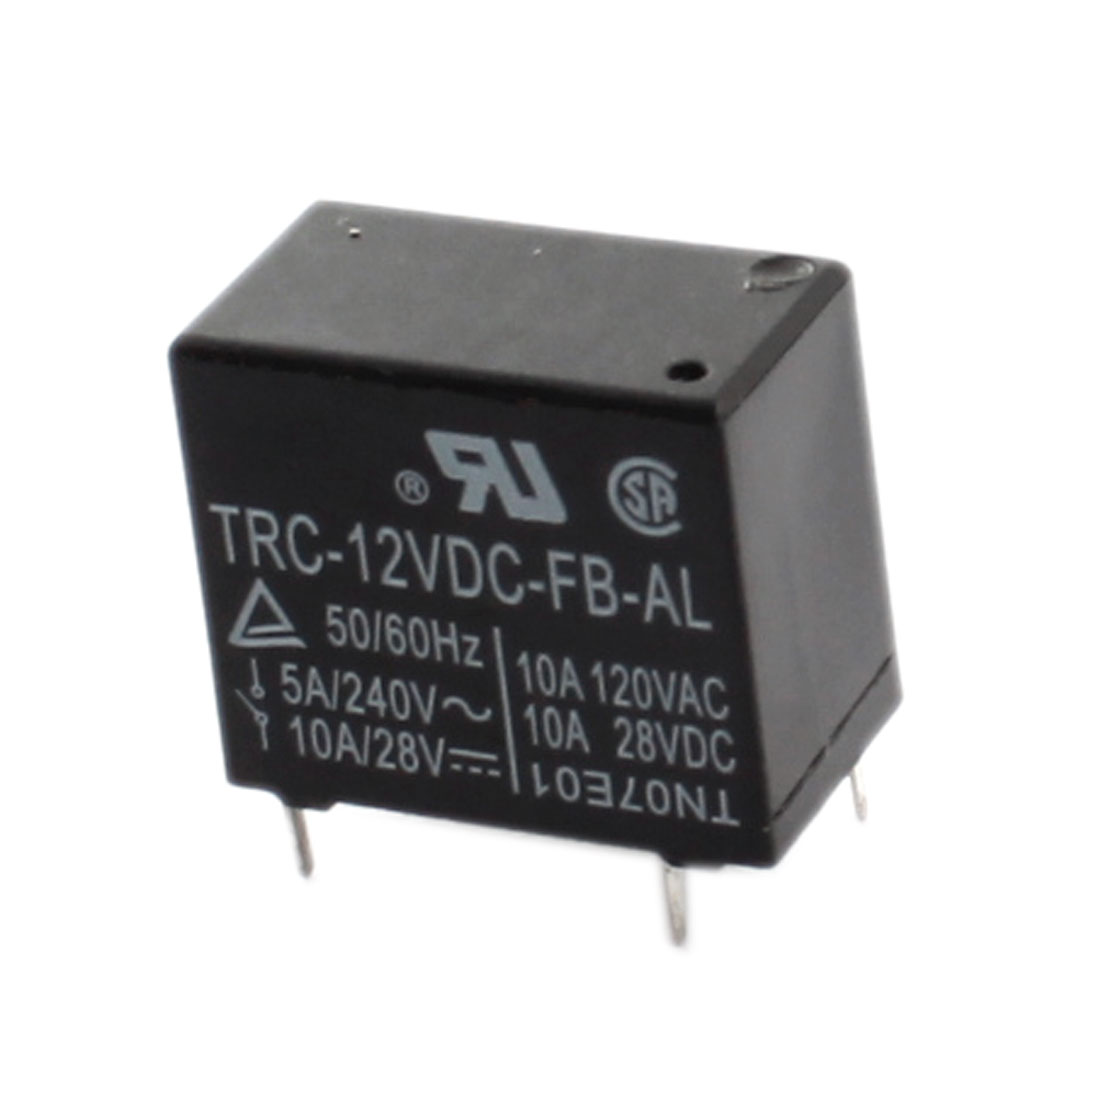 TRC-12VDC-FB-AL DC 12V Coil 4-Pin Plug in Mount Black Plastic Housing General Purpose Power Relay